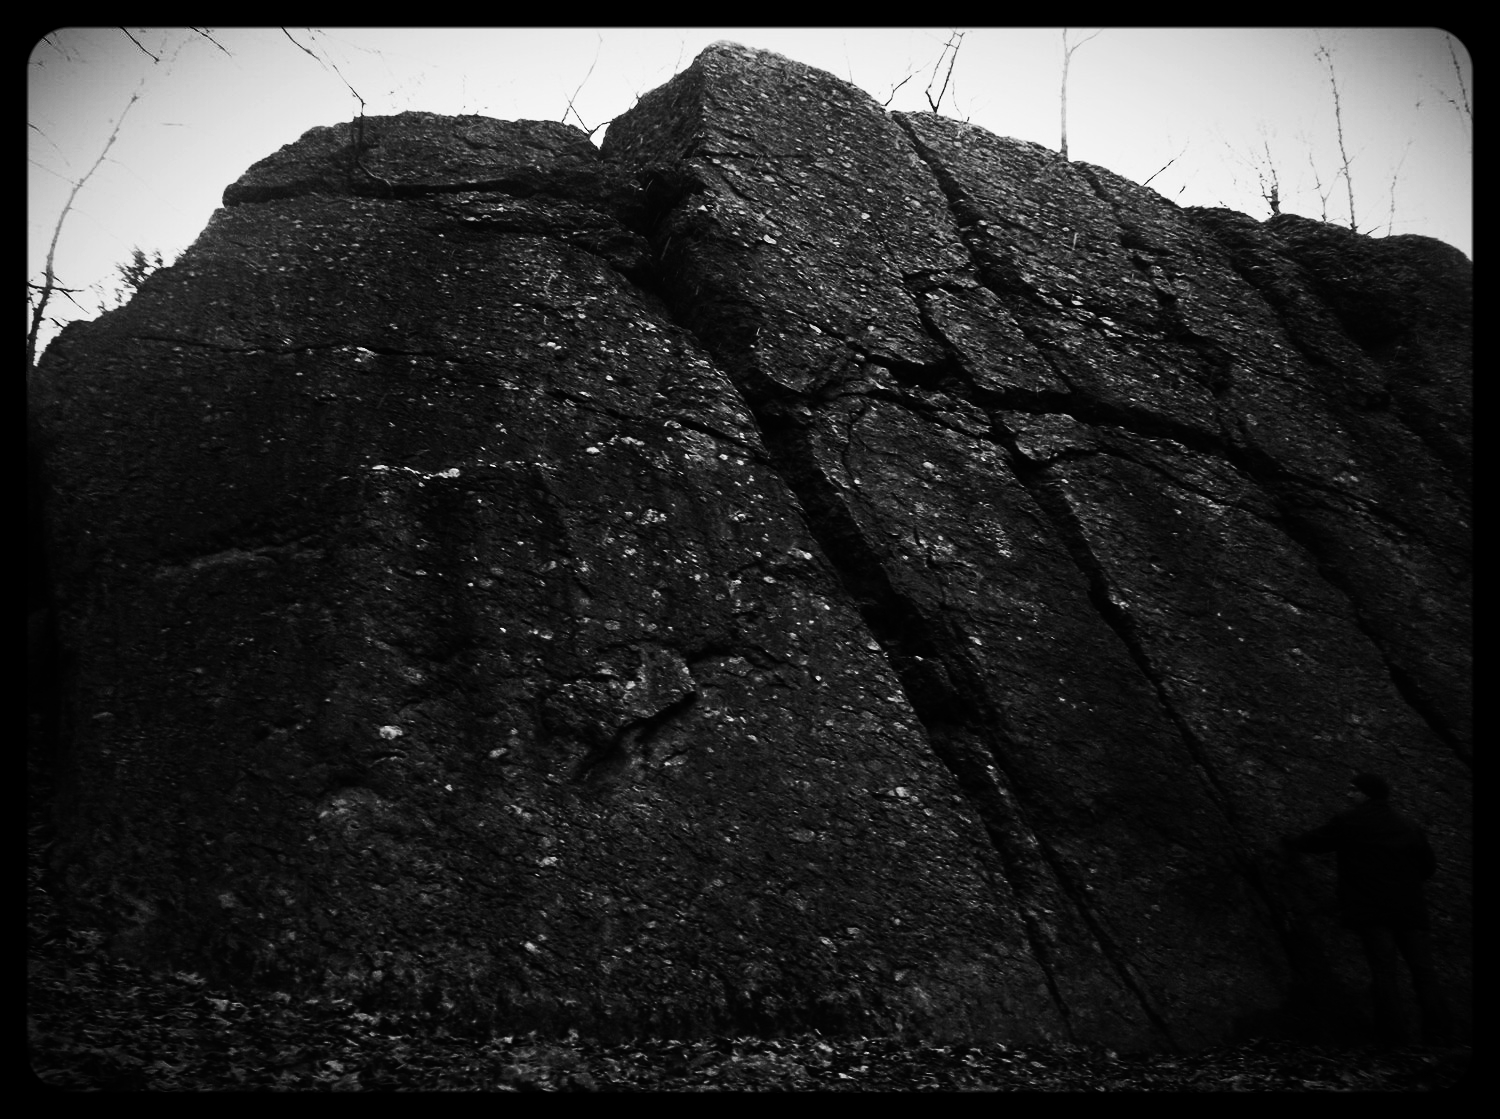 The tallest outcrop of Puddingstone in the area. Its face bears the marks of quarrying. Michelle Geffken, 2014